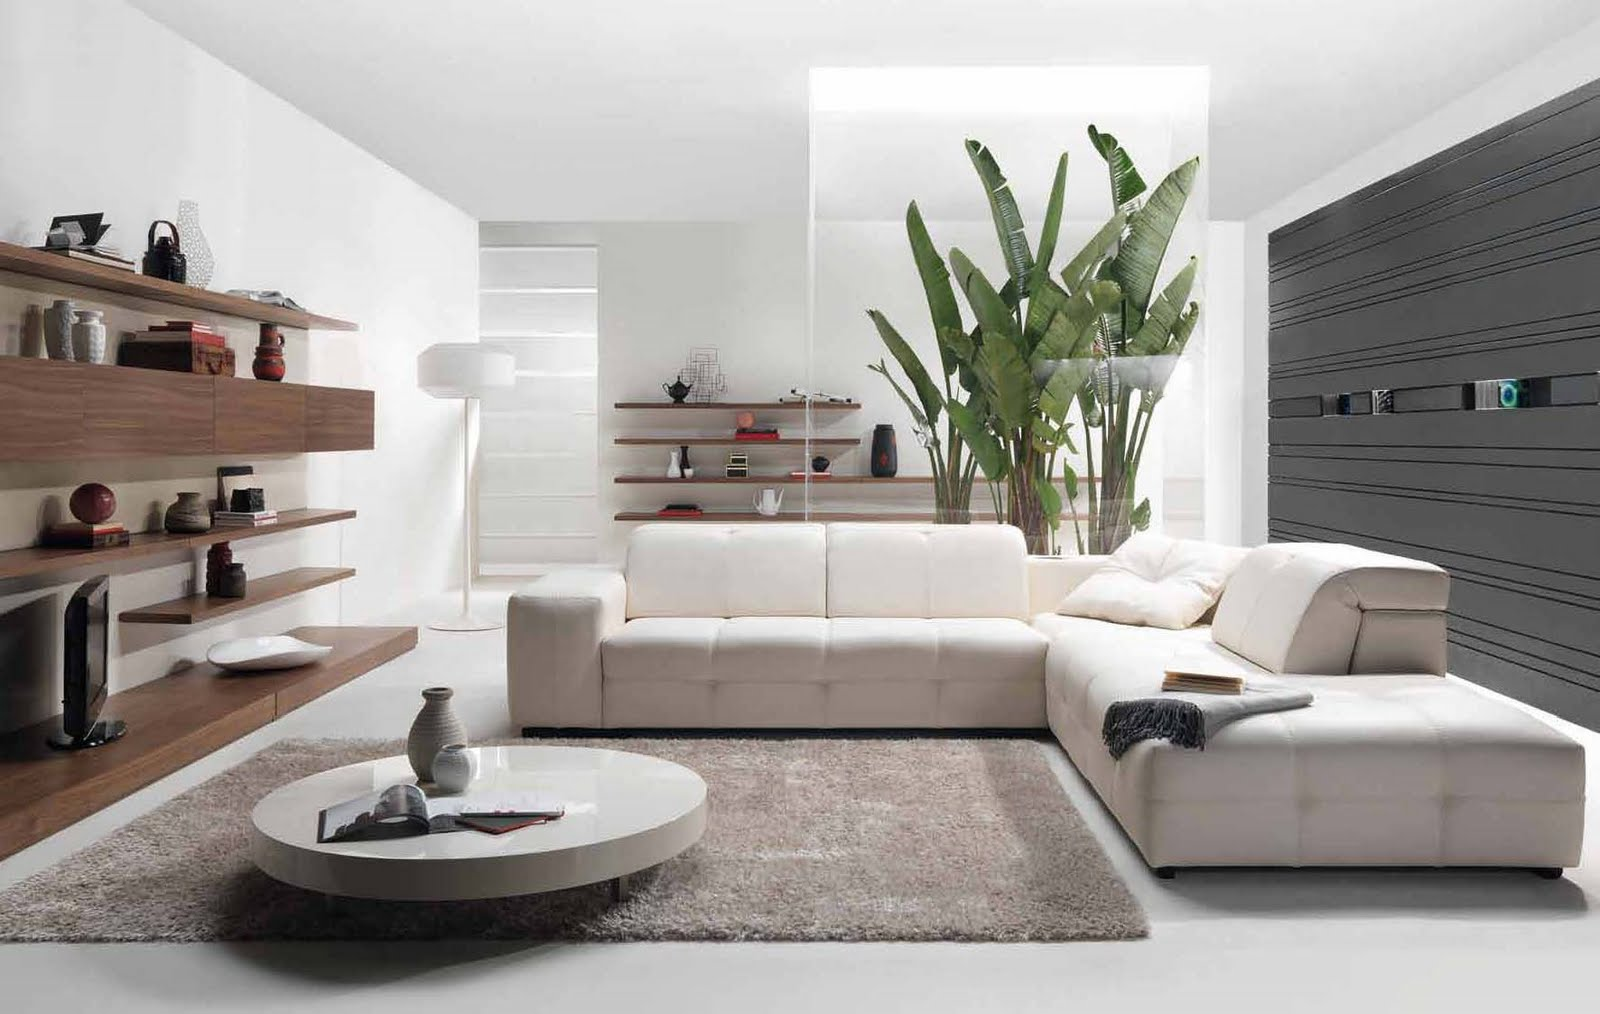 modern home interior furniture designs diy ideas On modern interior design living room